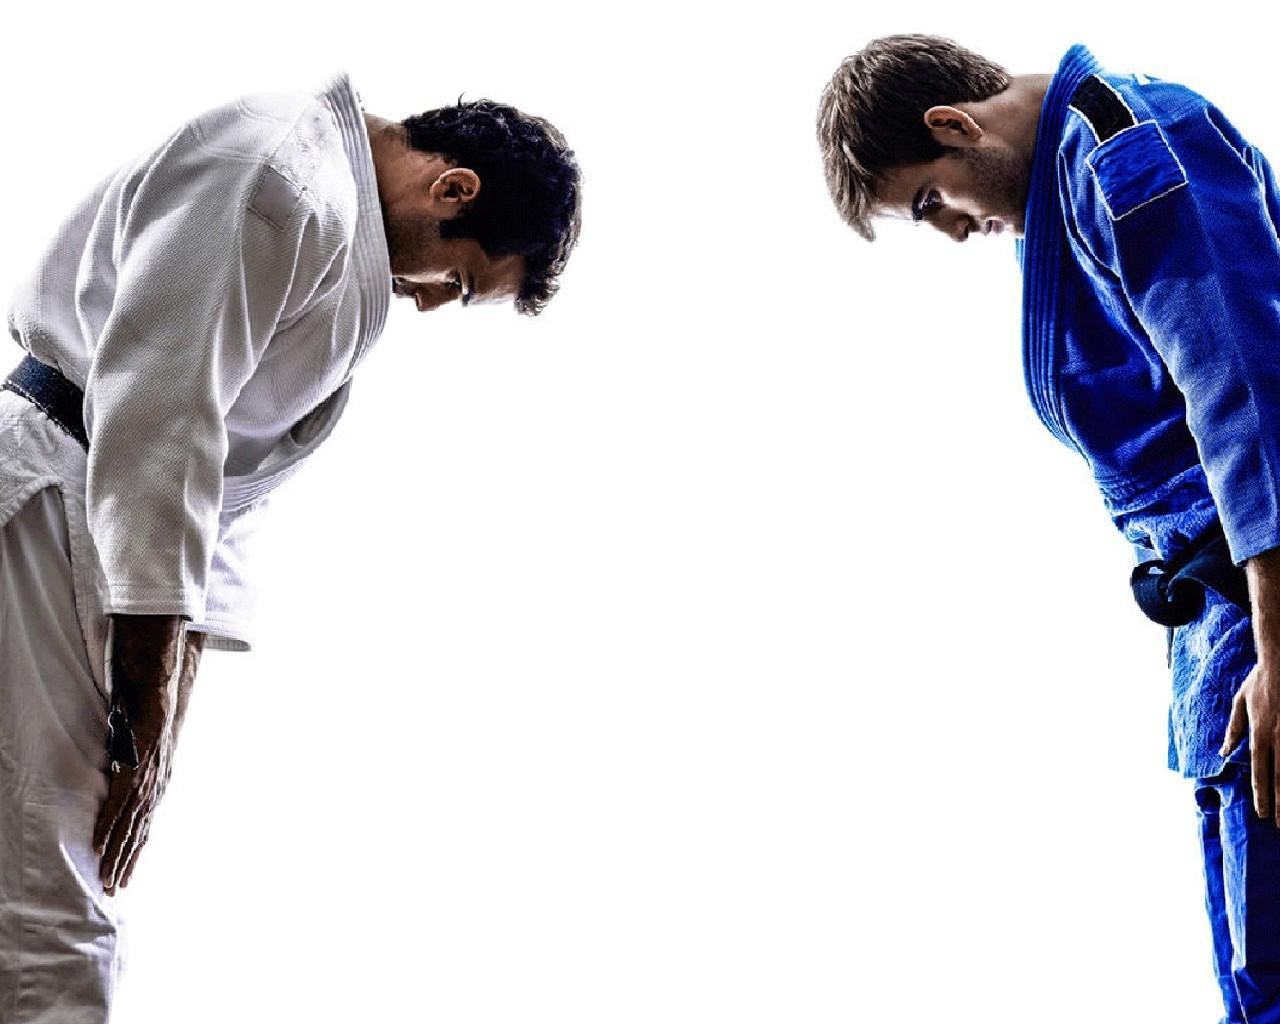 Sport Wallpaper Apps For Android: Sport Judo Fans Wallpapers Themes For Android